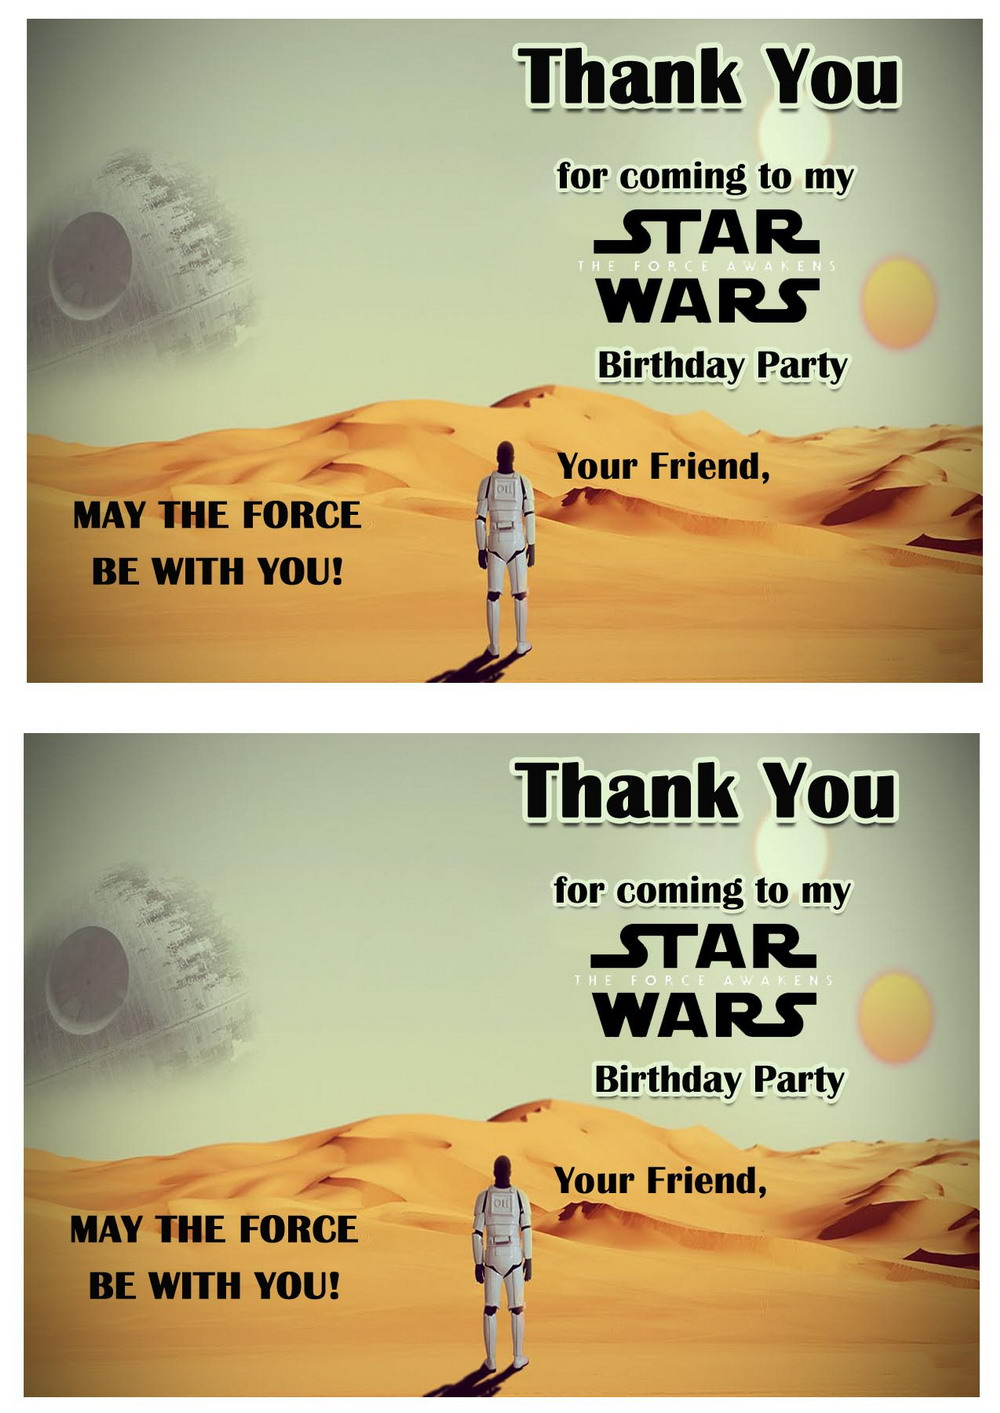 image relating to Star Wars Thank You Cards Printable Free identified as Star Wars Thank by yourself Playing cards Birthday Printable